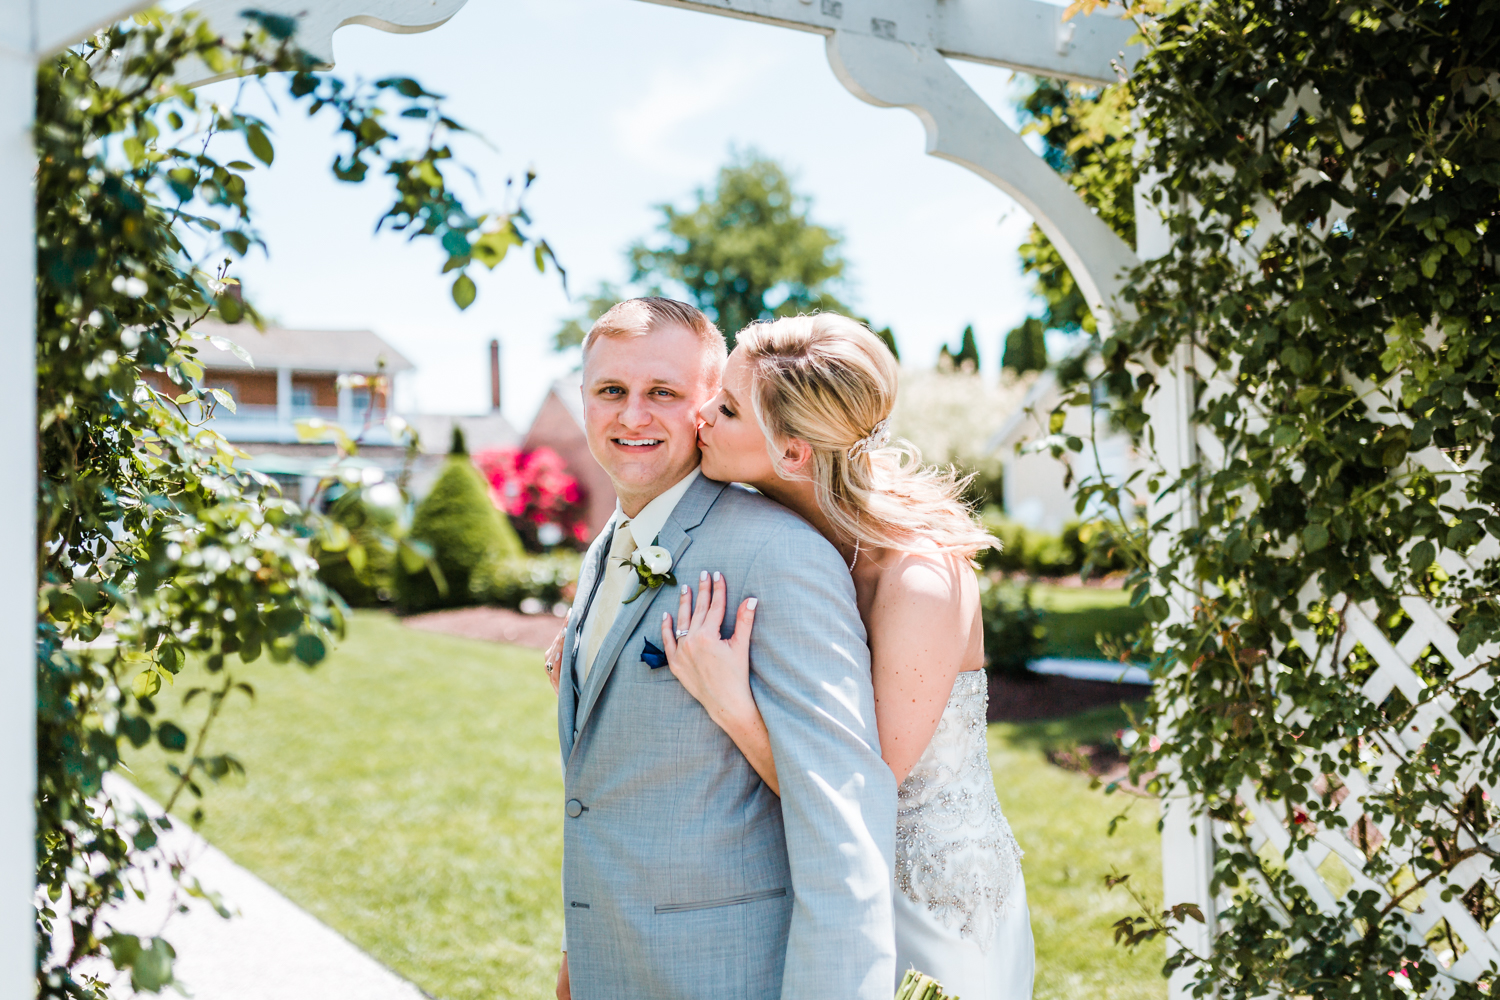 bride kissing groom at historic venue in Carroll County Maryland - top rated photography in MD